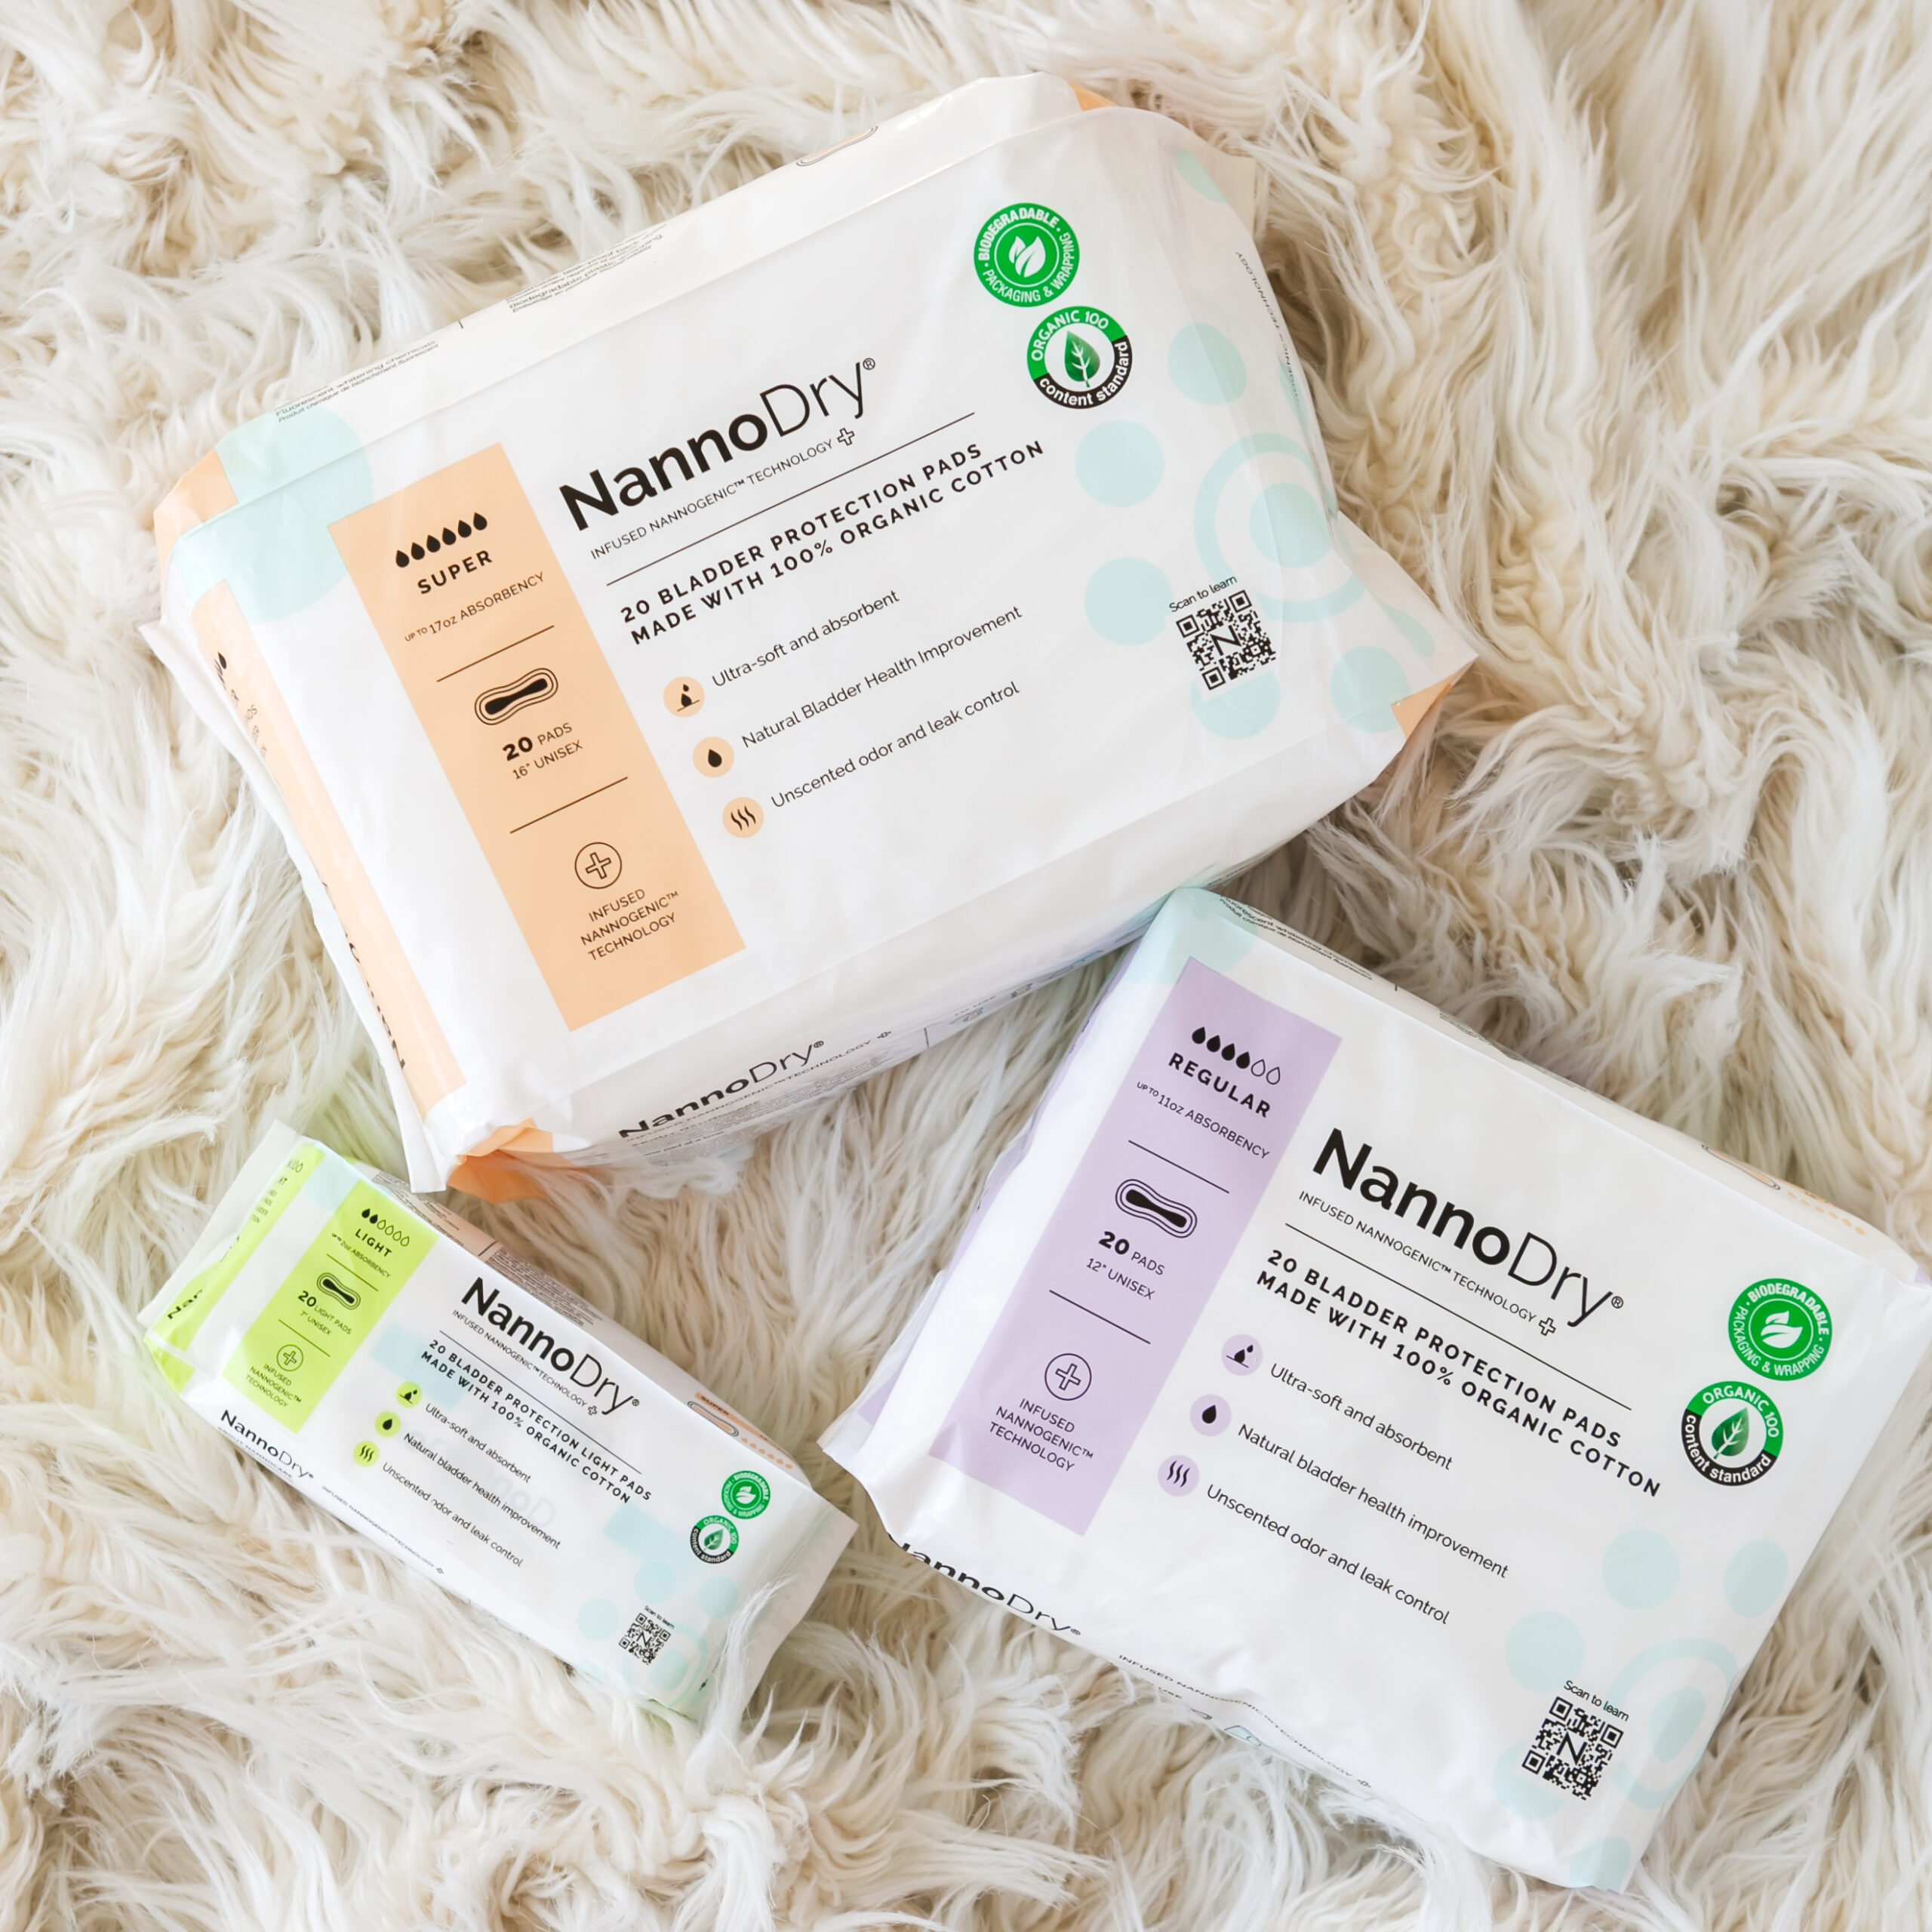 The Company Behind NannoPad® Sold in CVS Pharmacies Launches a New Incontinence Protection Product NannoDry®